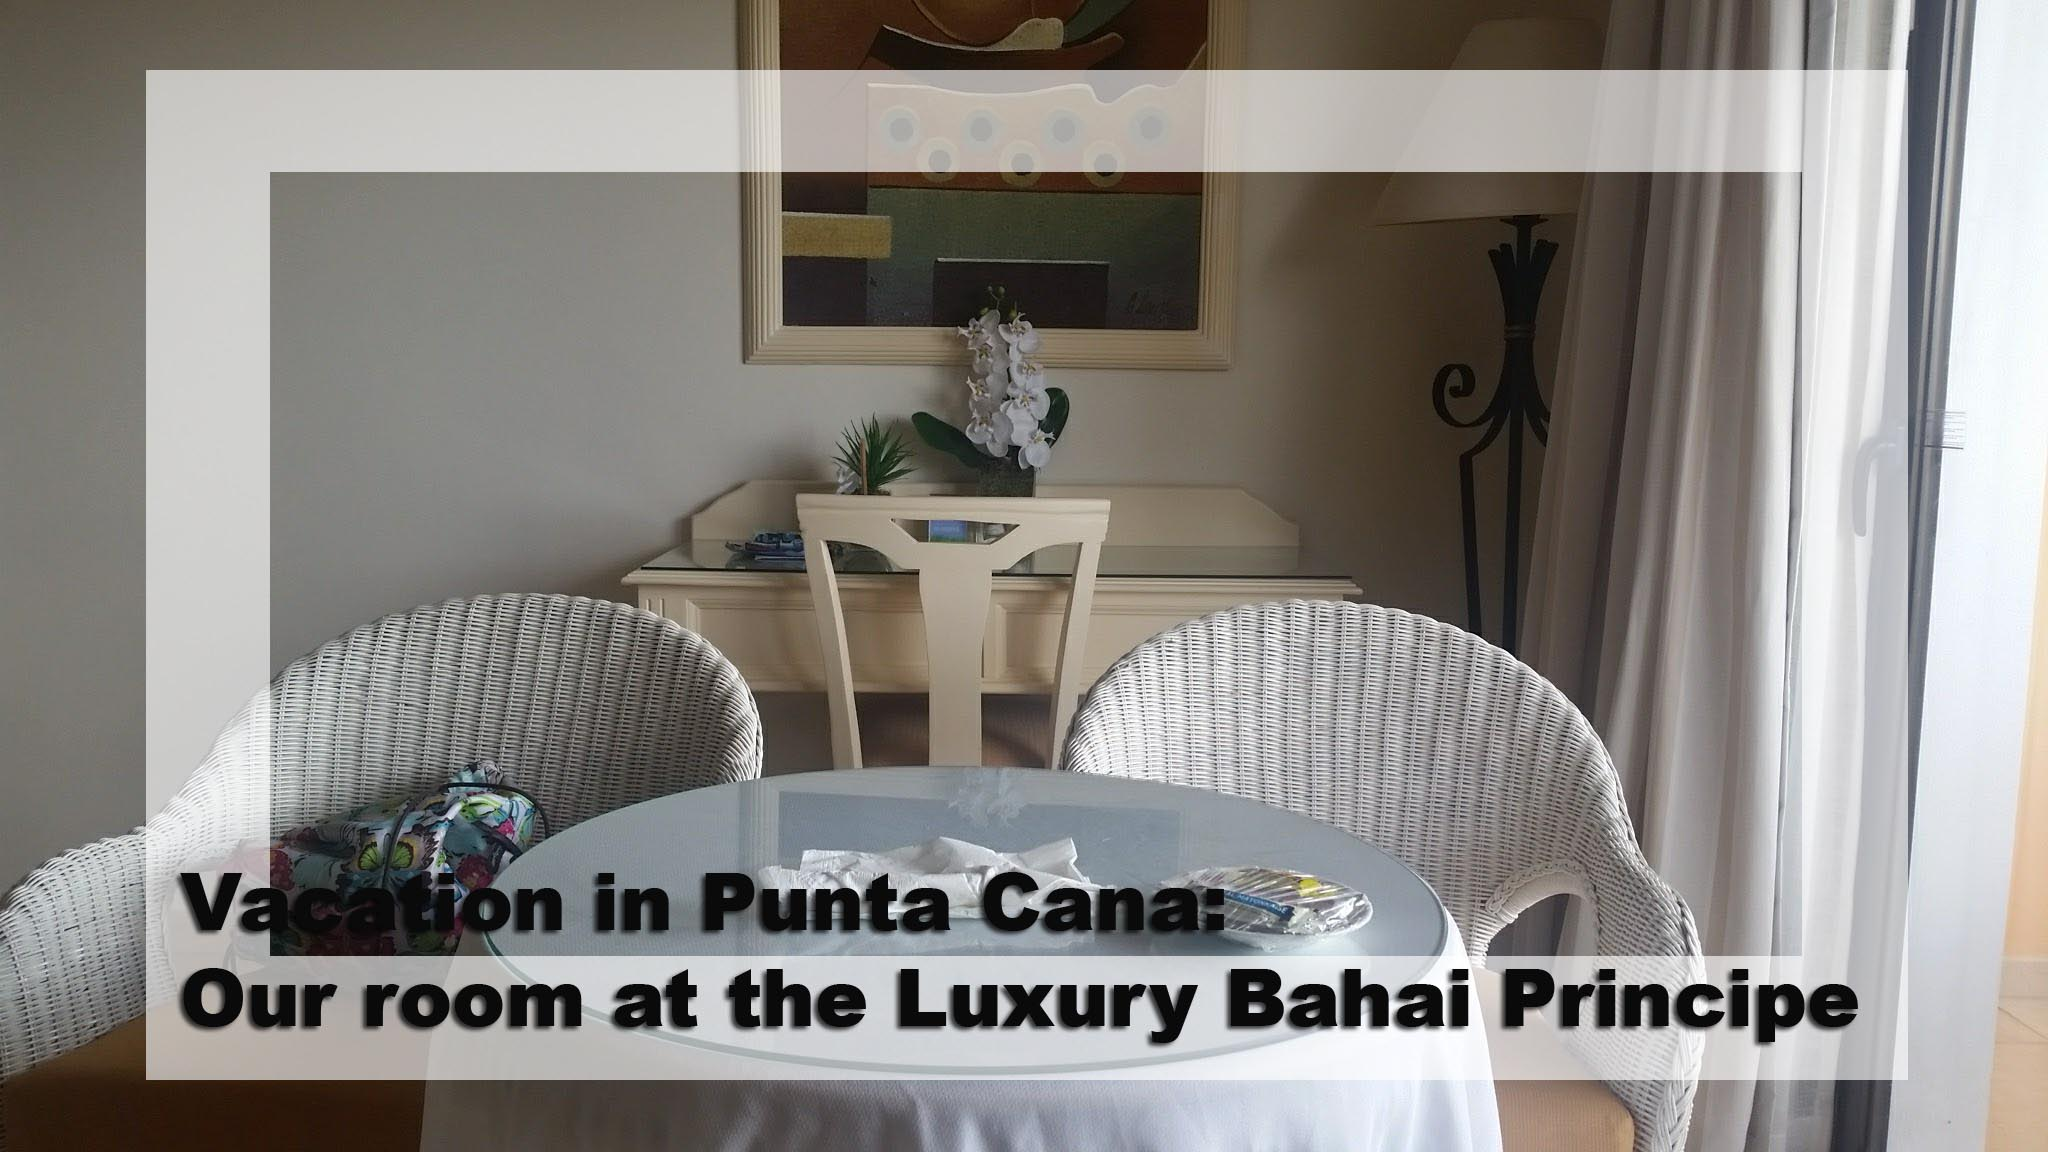 Vacation in Punta Cana: Our room at the Luxury Bahai Principe